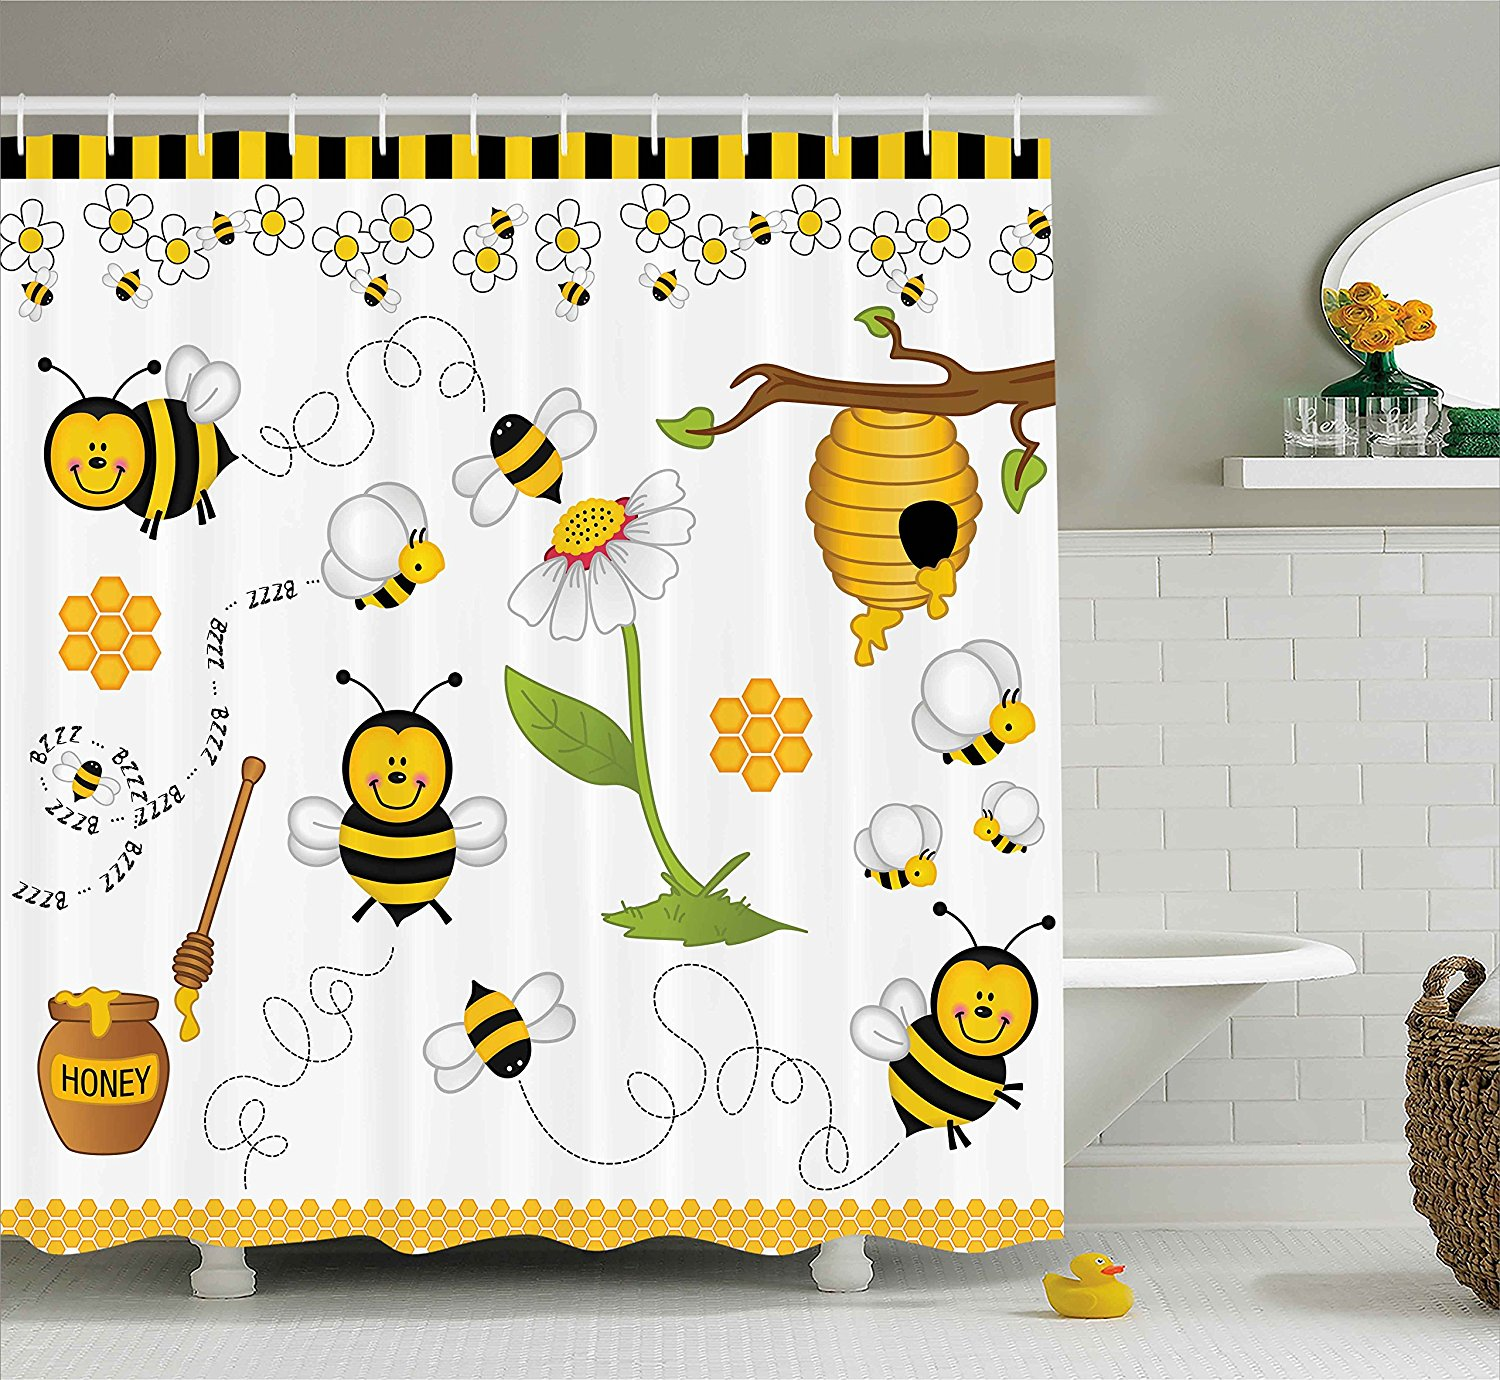 Collage Decor Shower Curtain Flying Bees Daisy Honey Chamomile Flowers Pollen Spring Themed Animal Print Bathroom Set In Curtains From Home Garden